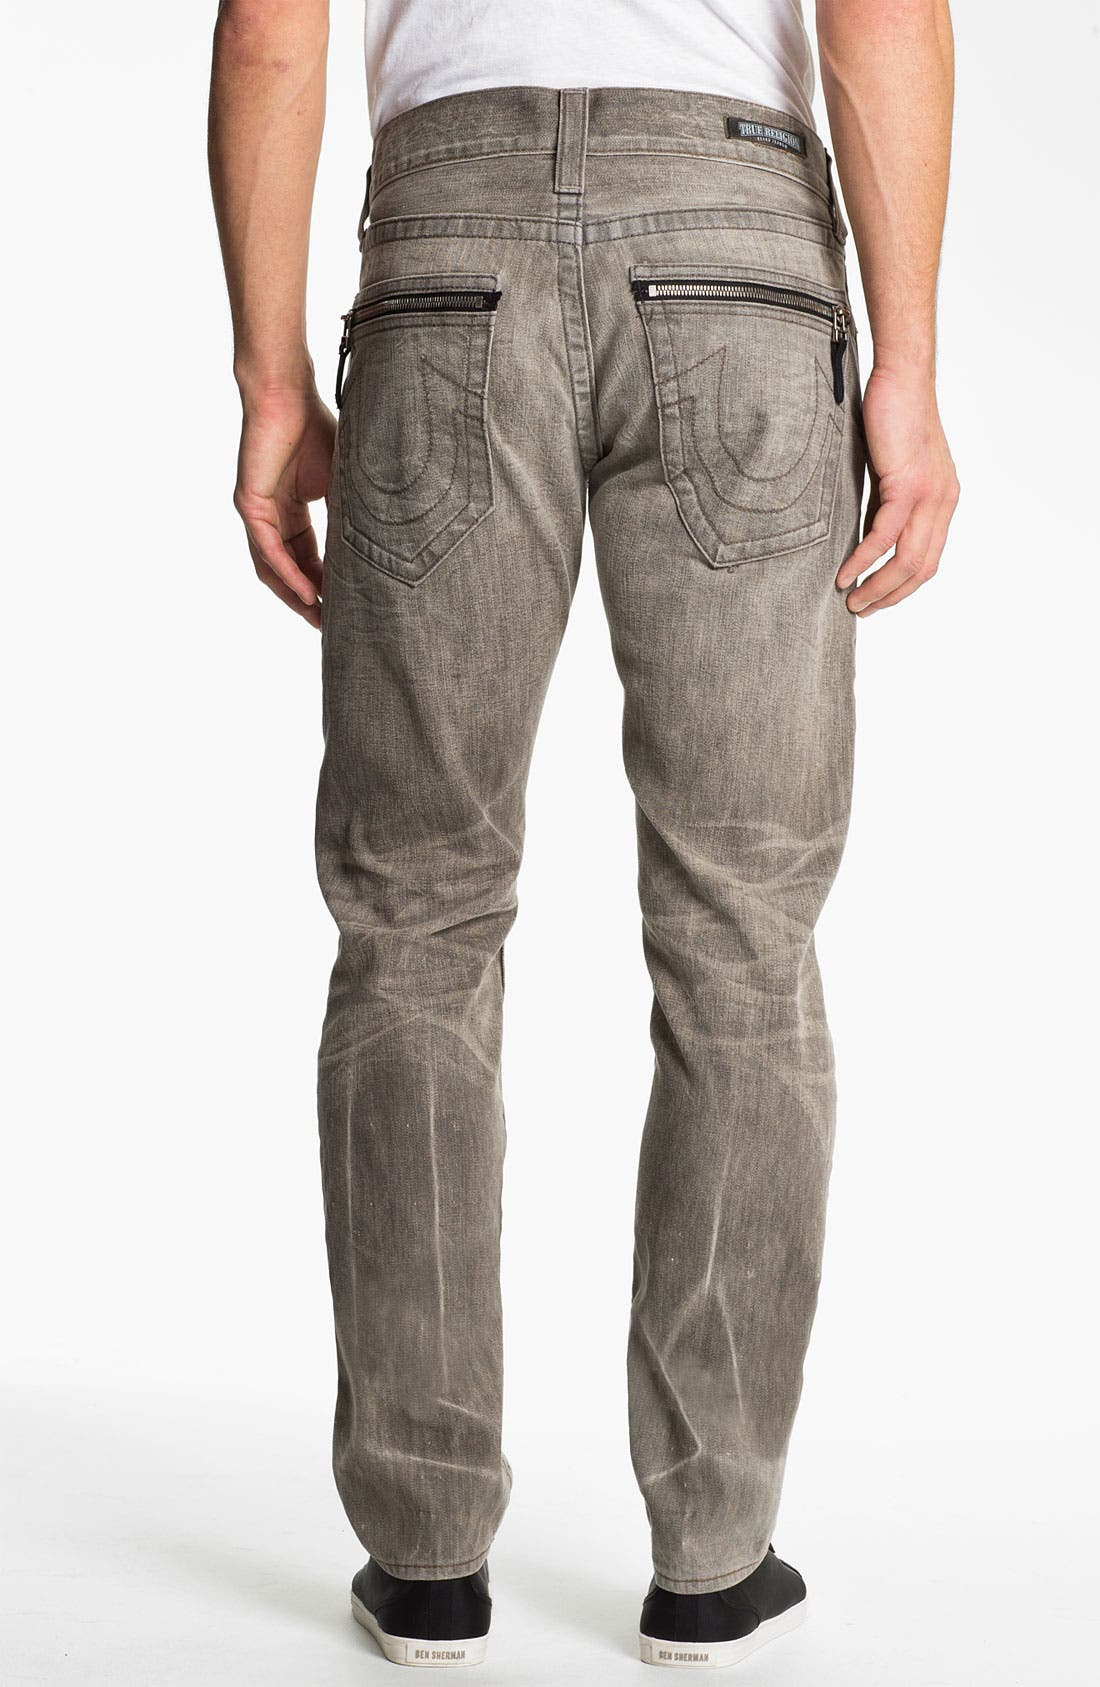 Alternate Image 1 Selected - True Religion Brand Jeans 'Rocco' Slim Straight Leg Jeans (Ashland) (Online Exclusive)